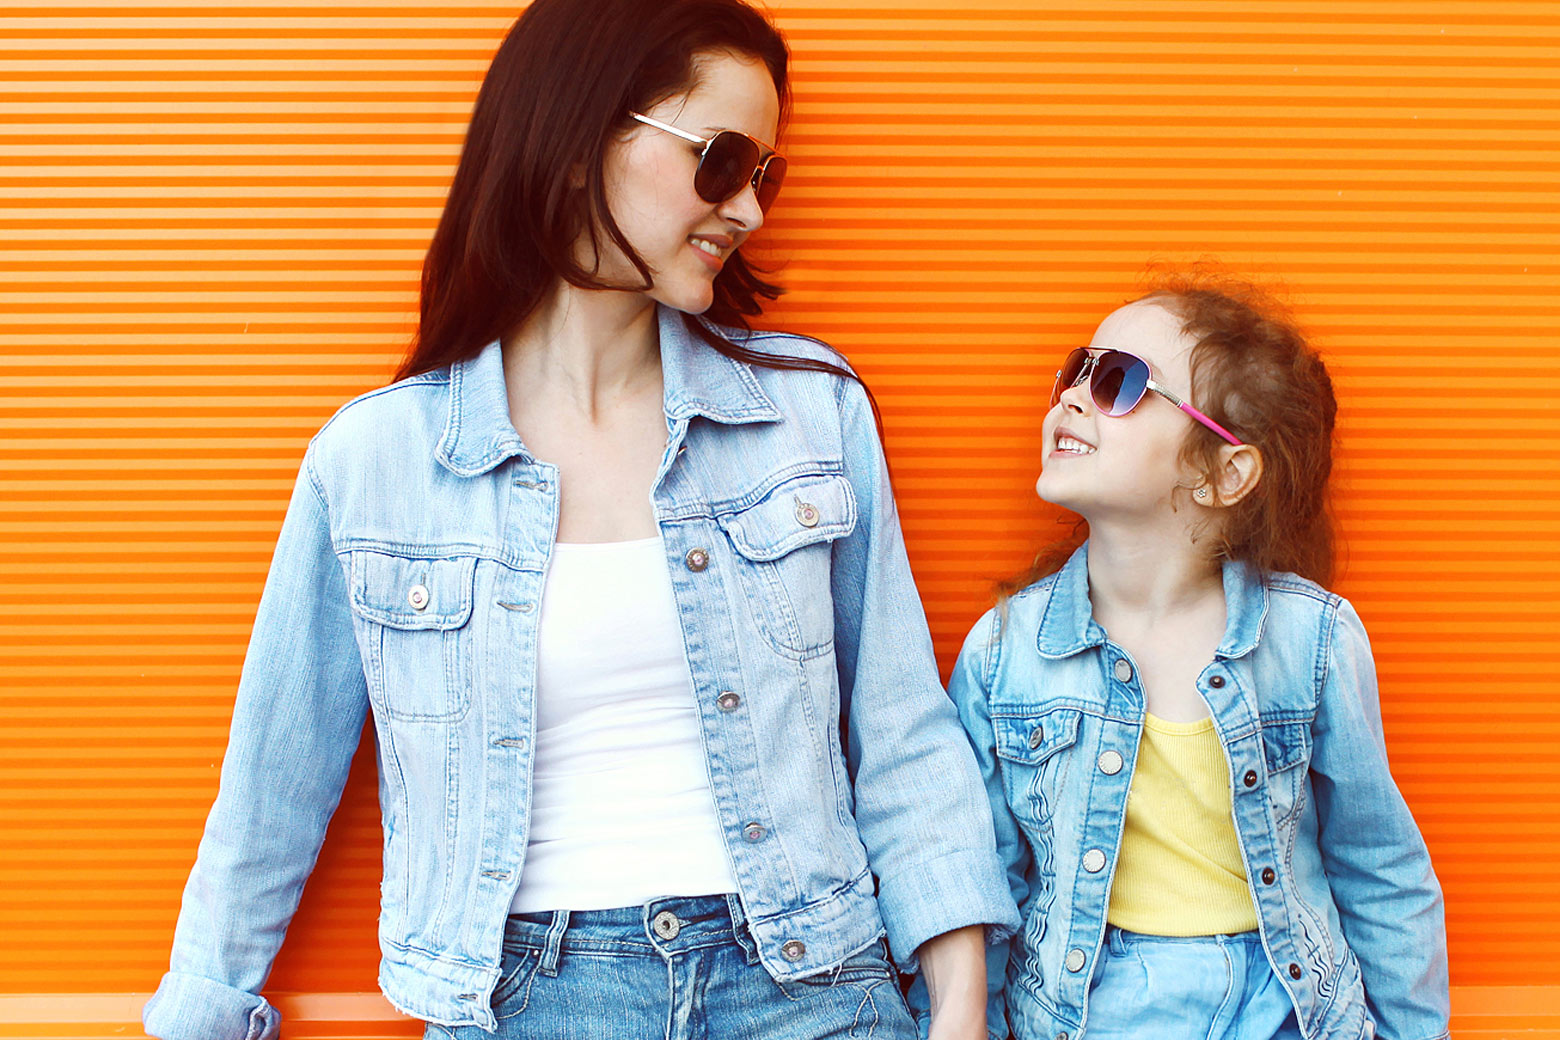 Mom and daughter in denim smiling at each other, against an orange background